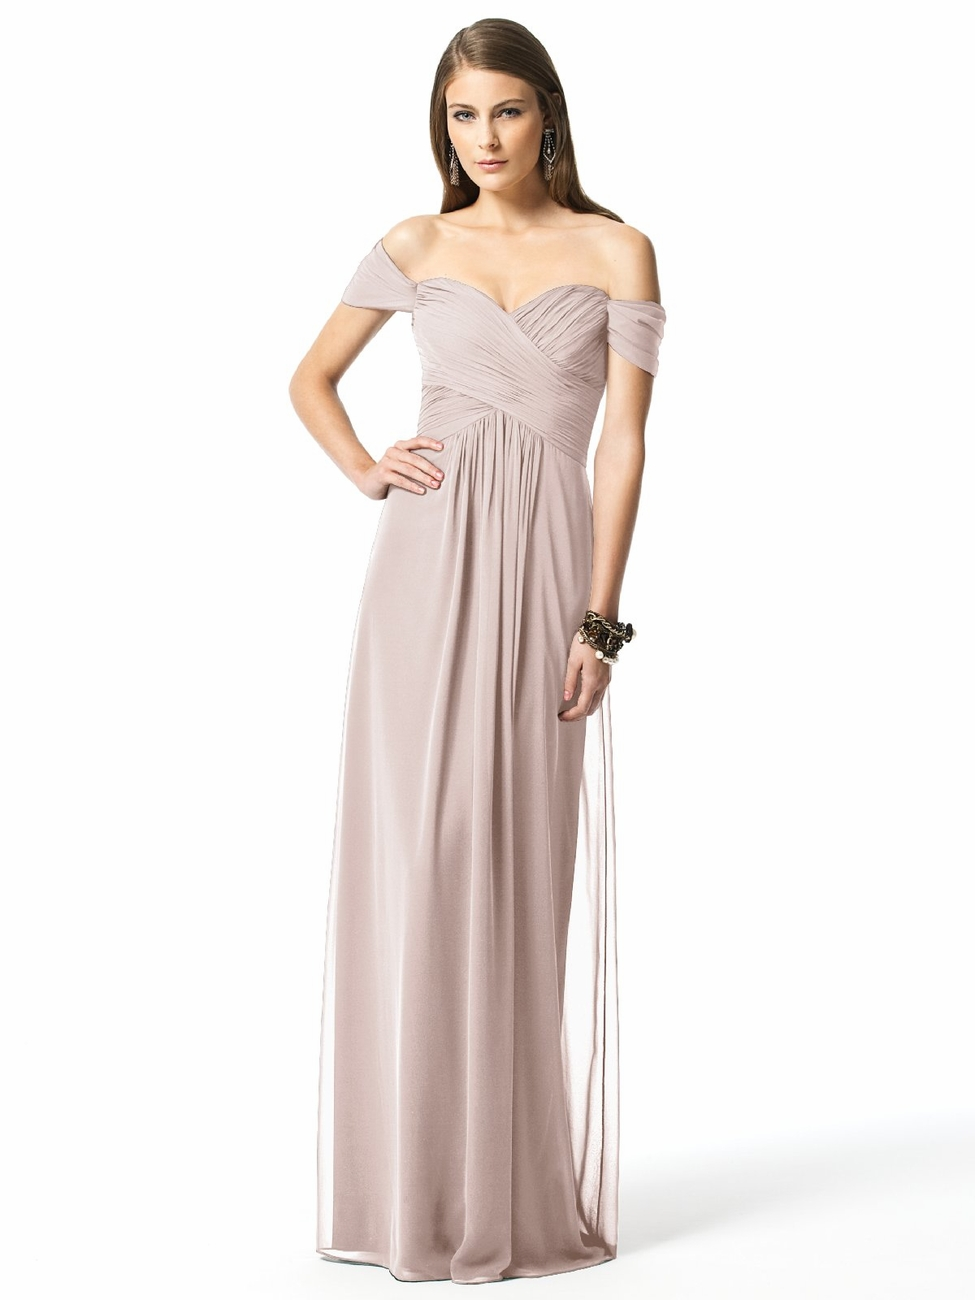 DESSY BRIDESMAID DRESSES|DESSY DRESSES 2844|D2844|THE DESSY GROUP ...